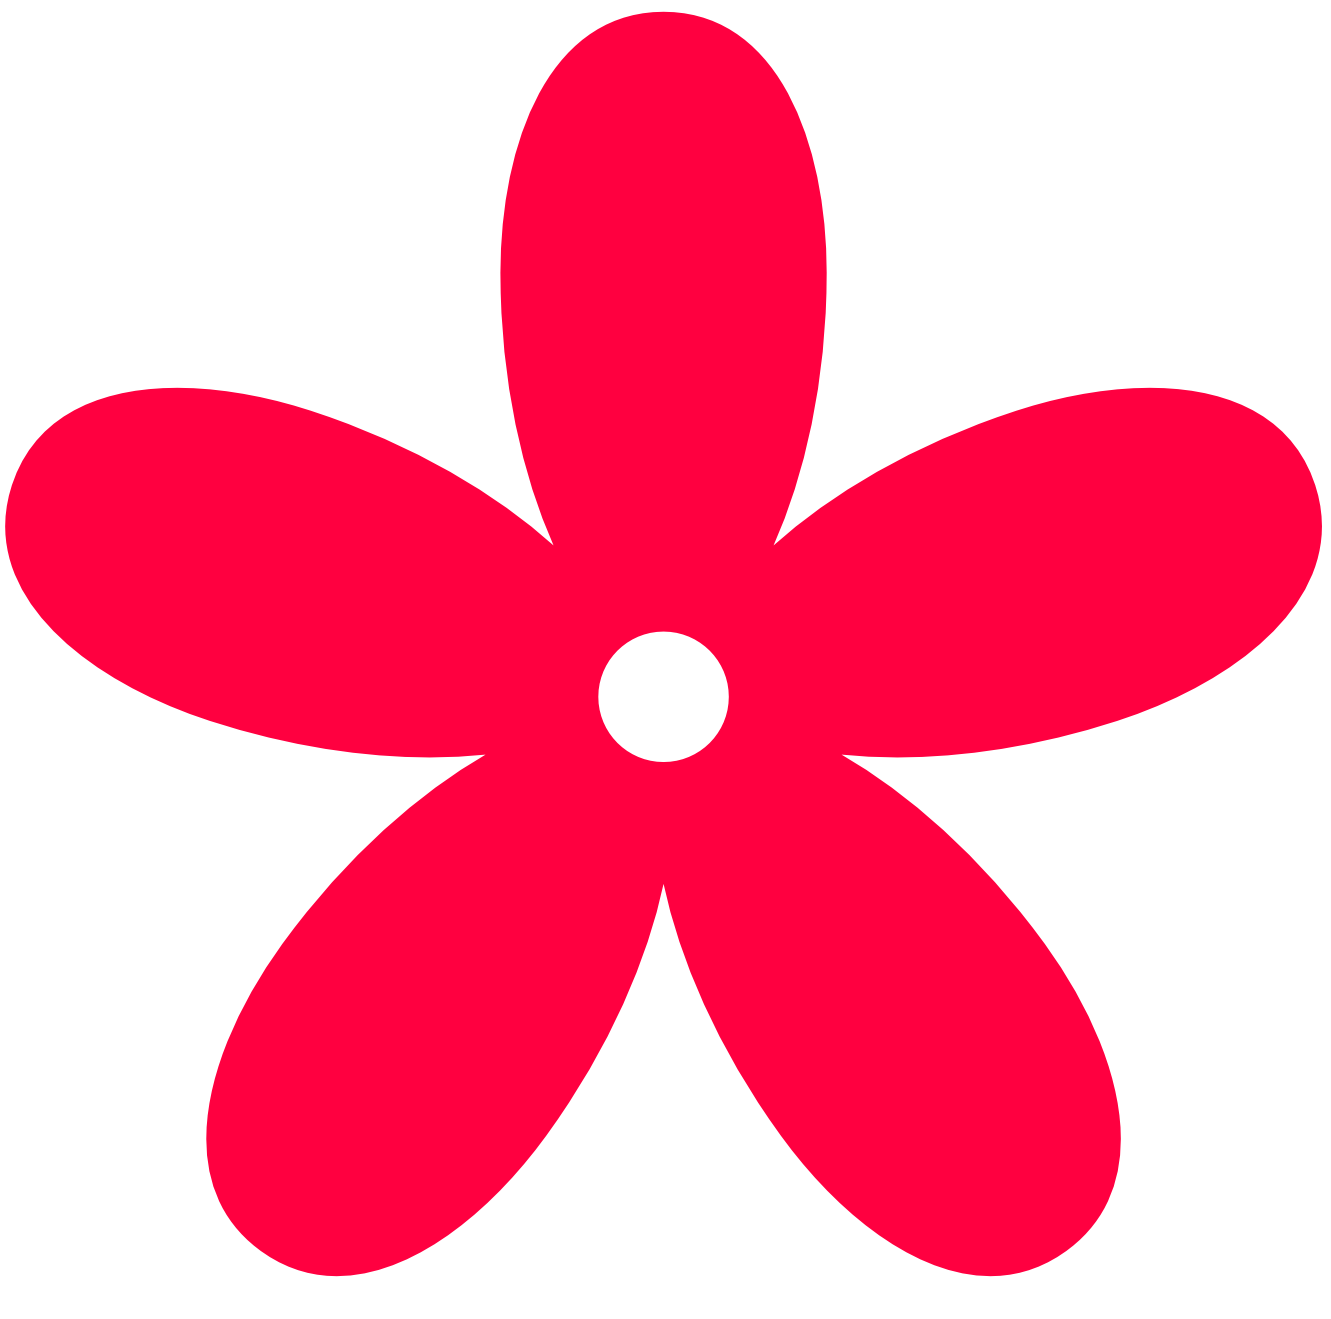 Red Flower clipart groovy #2